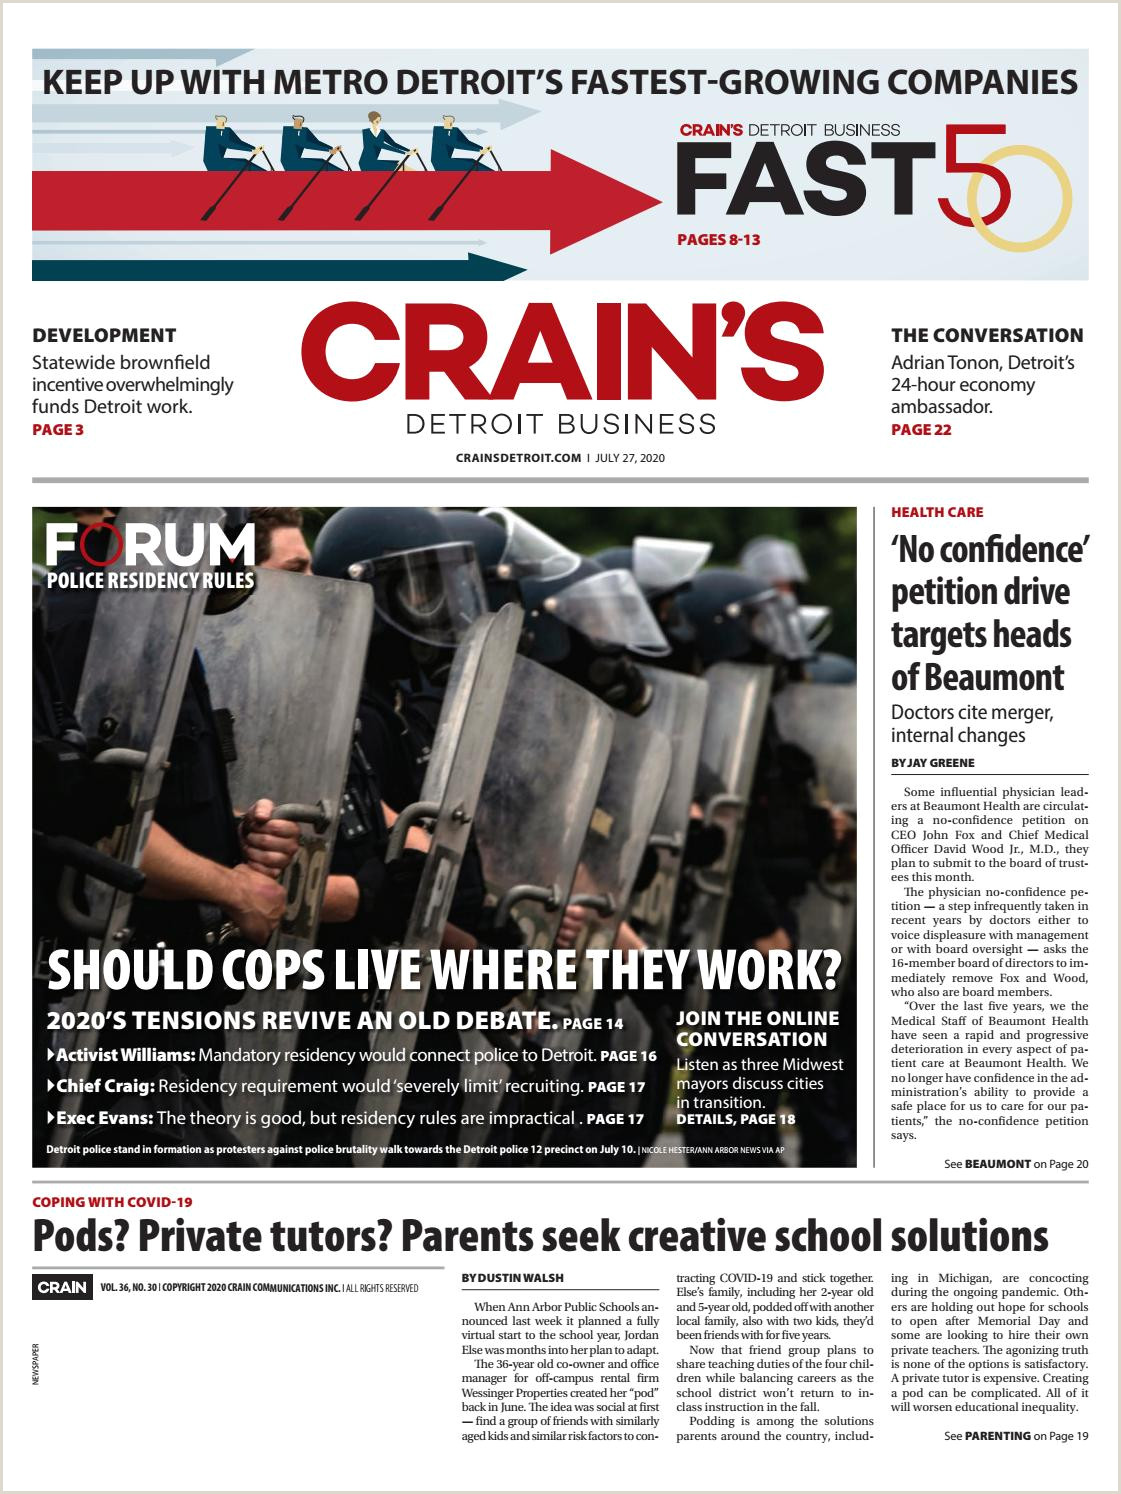 Usiness Cards Crain S Detroit Business July 27 2020 Issue By Crain S